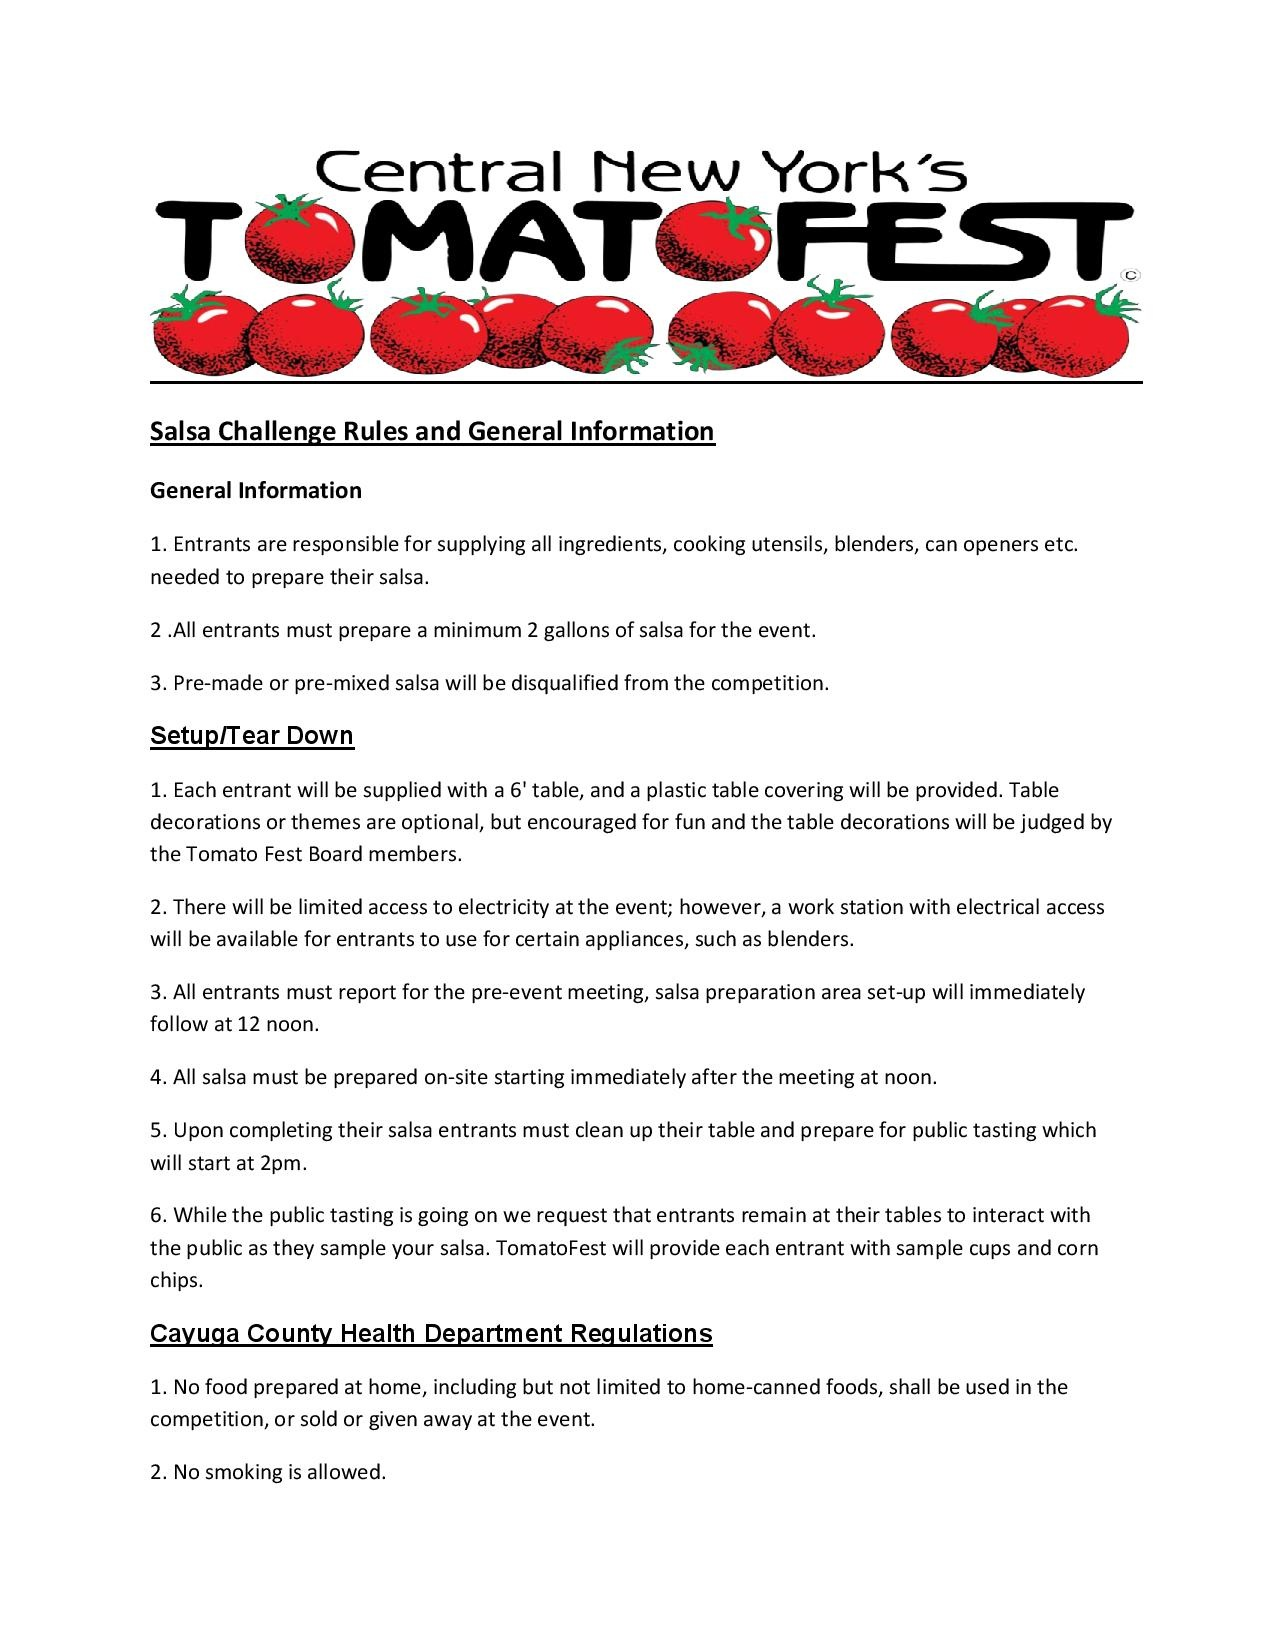 TomatoFest+Salsa+Contest+Rules+2019-page-001.jpg